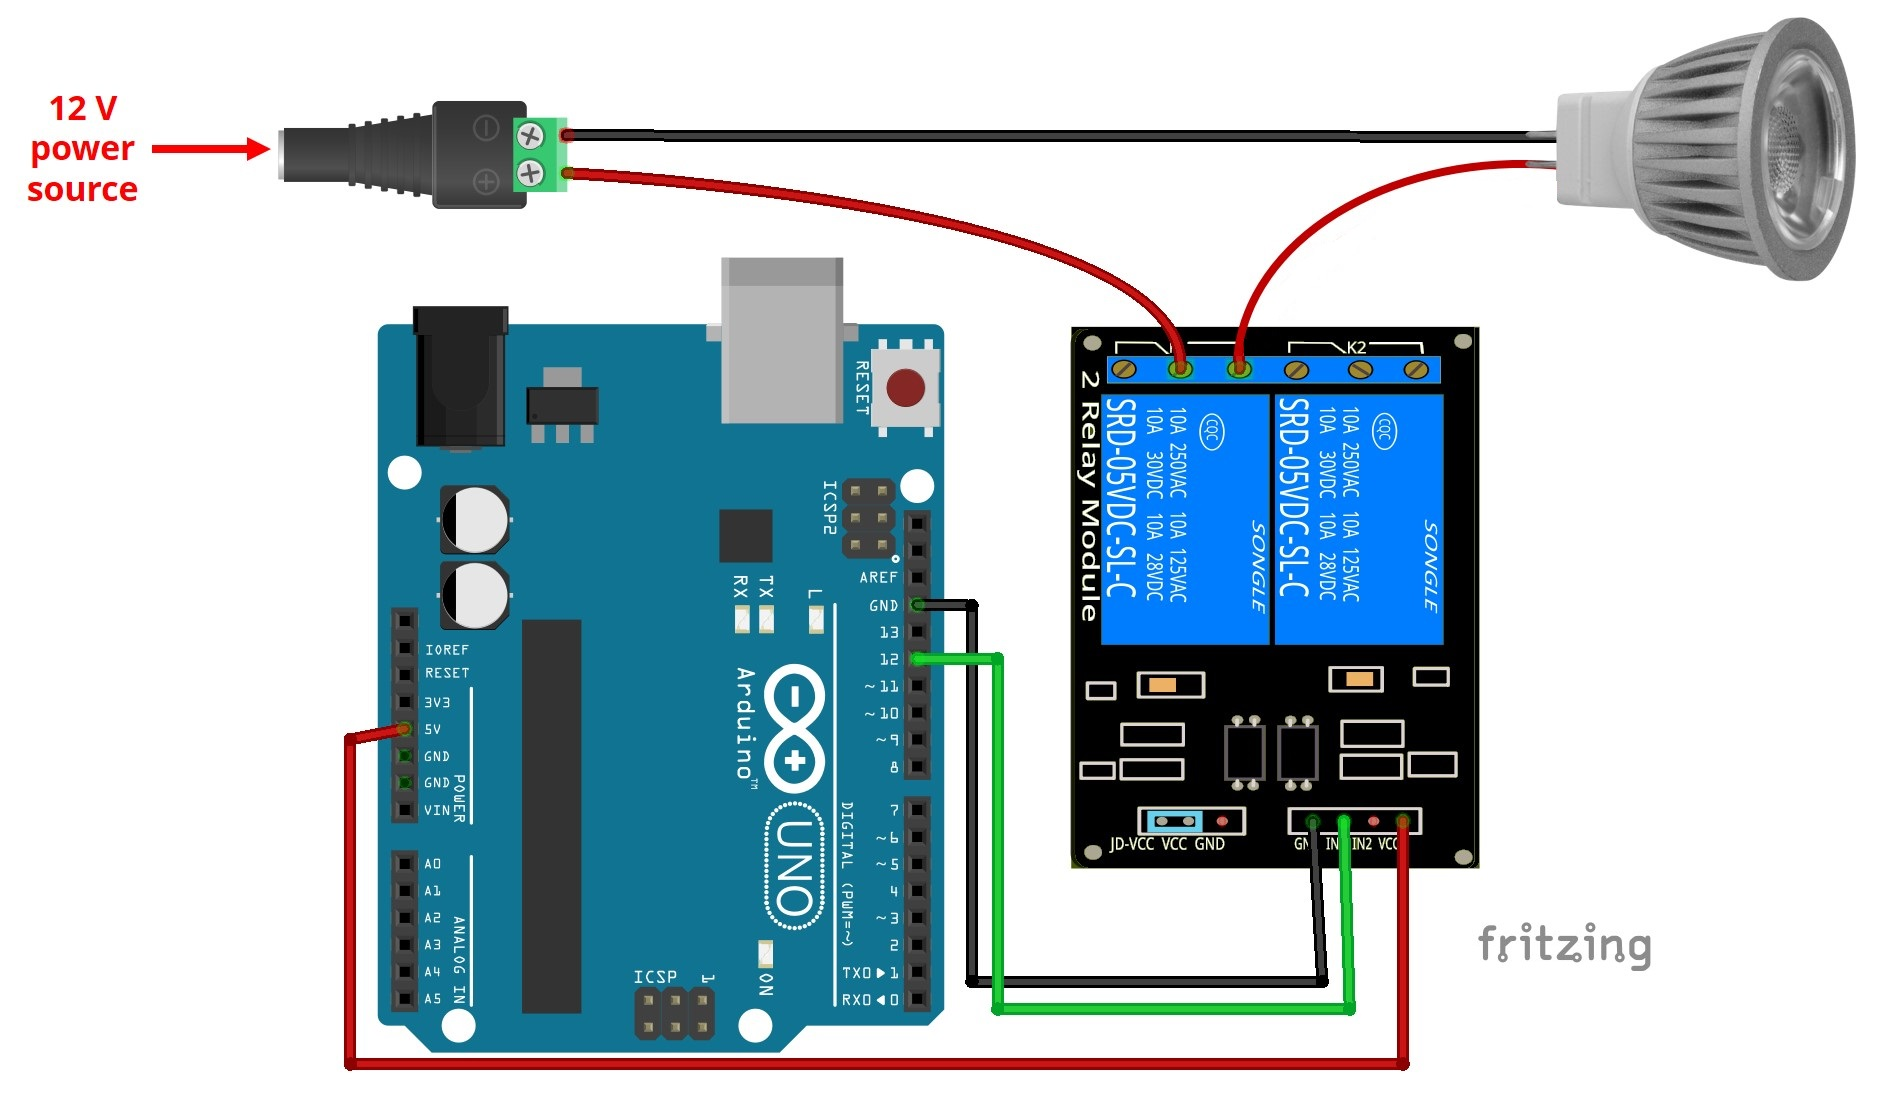 12 Volt Switch Wiring Arduino - DIY Enthusiasts Wiring Diagrams •